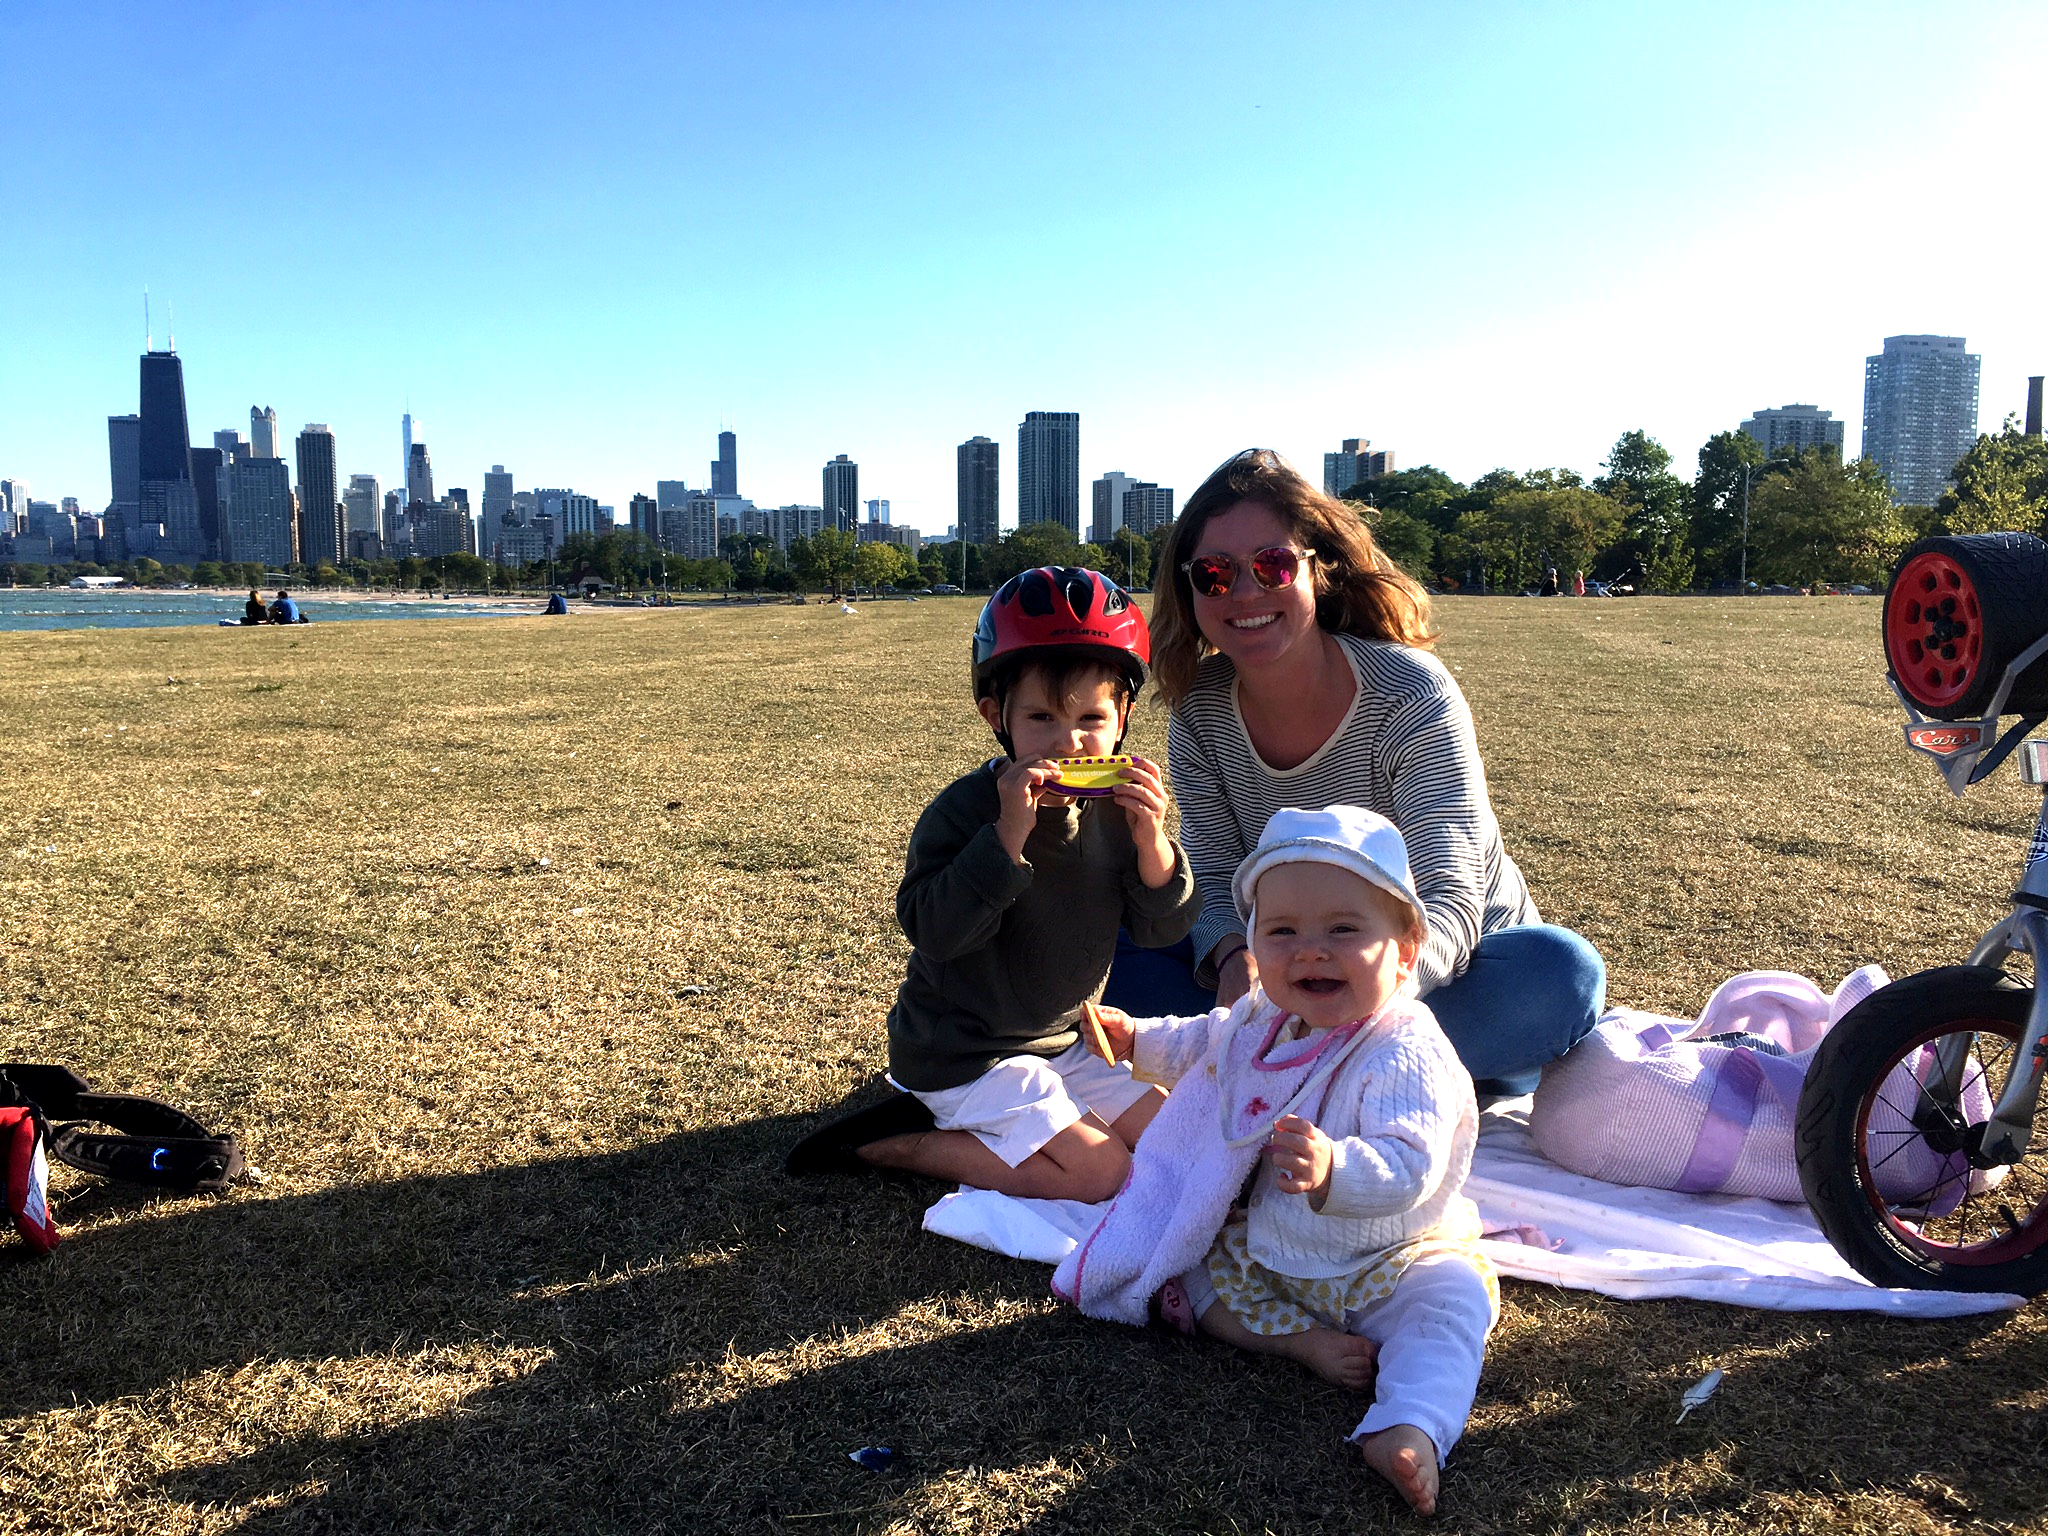 View of Chicago skyline with kids